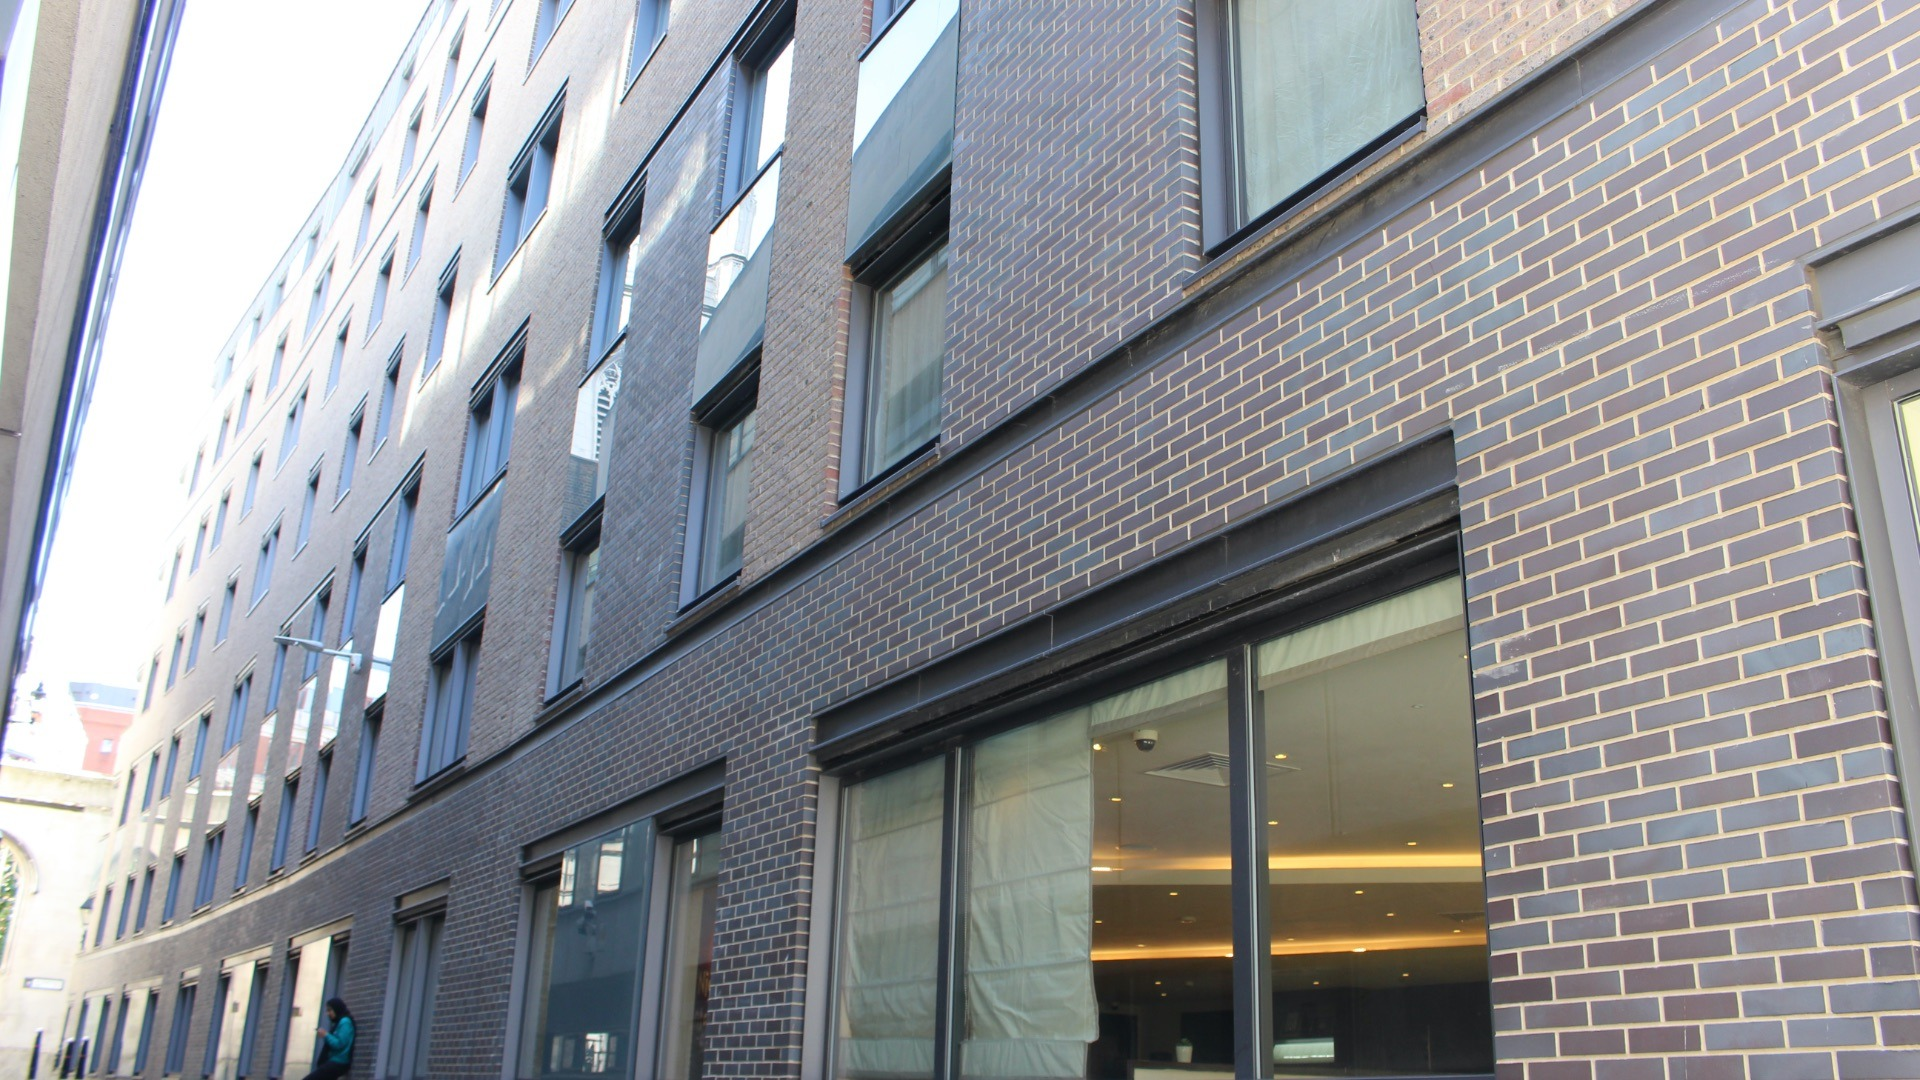 render systems uk